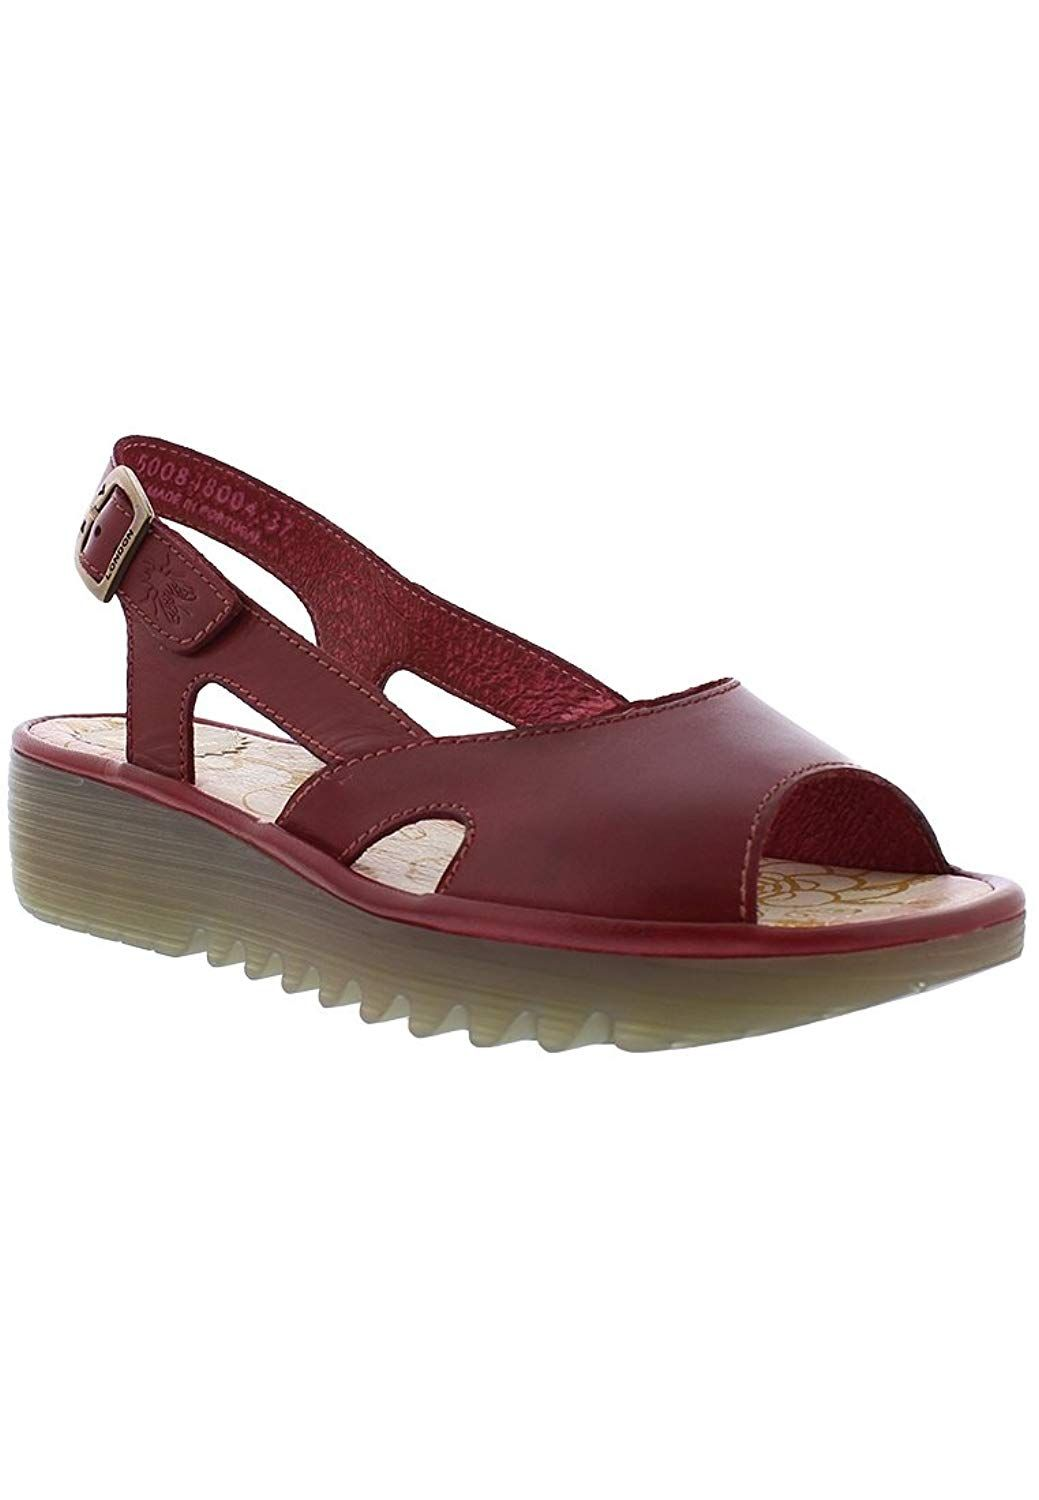 12c888d46df0 FLY London Women s ELFE848FLY Wedge Sandal. Open toe sling back sandal. Women s  Shoes